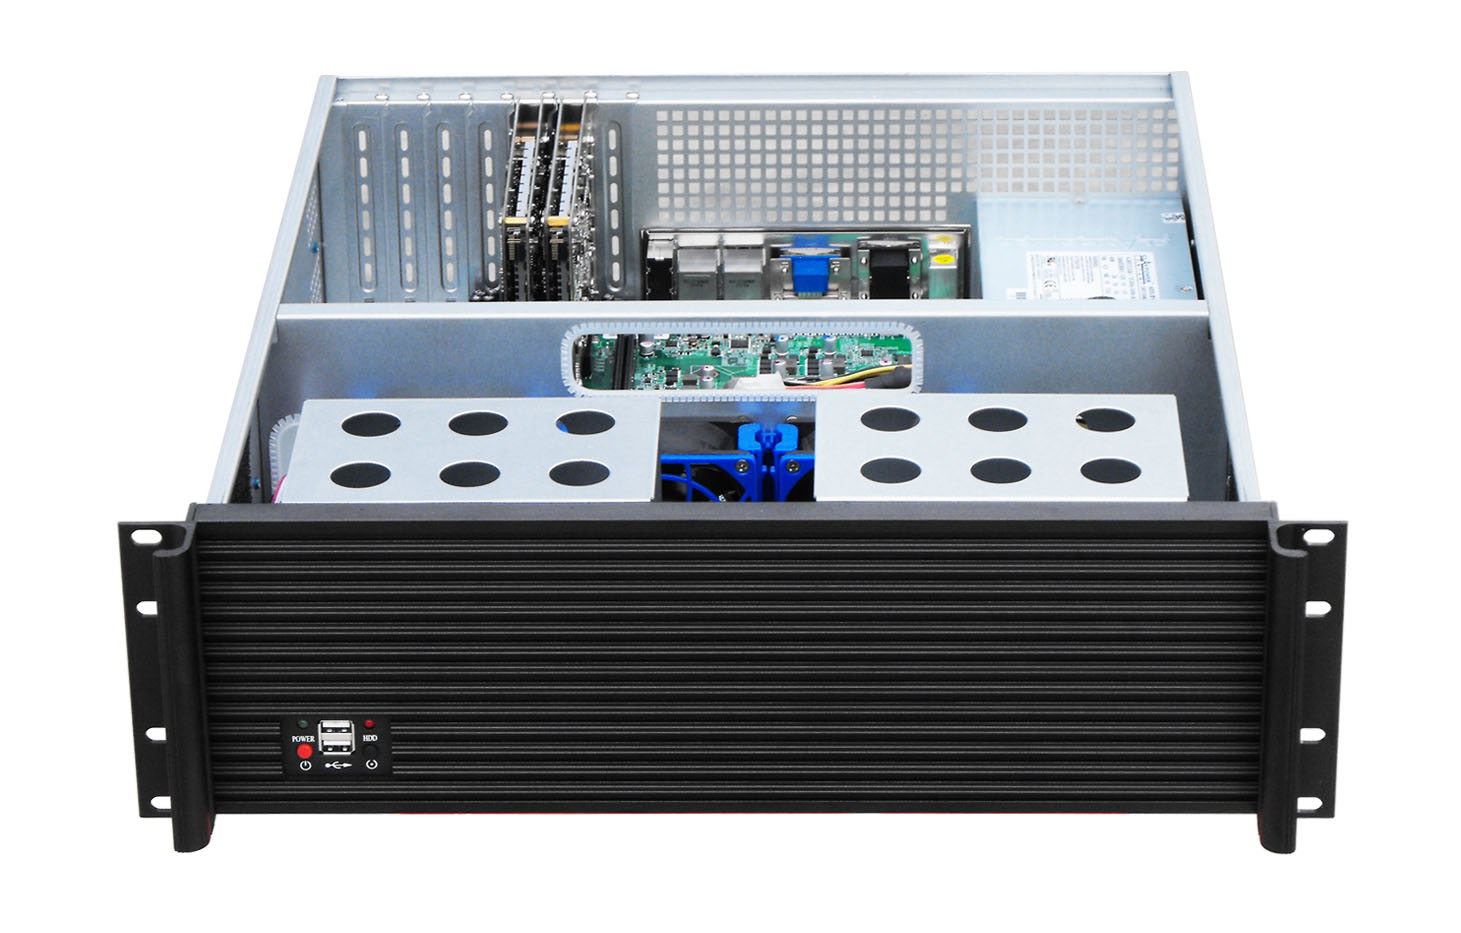 """3U Server Case Support Motherboard Size Up To ATX 12""""9.6"""",83.5""""HDD Bays,2U Standard Power Supply"""